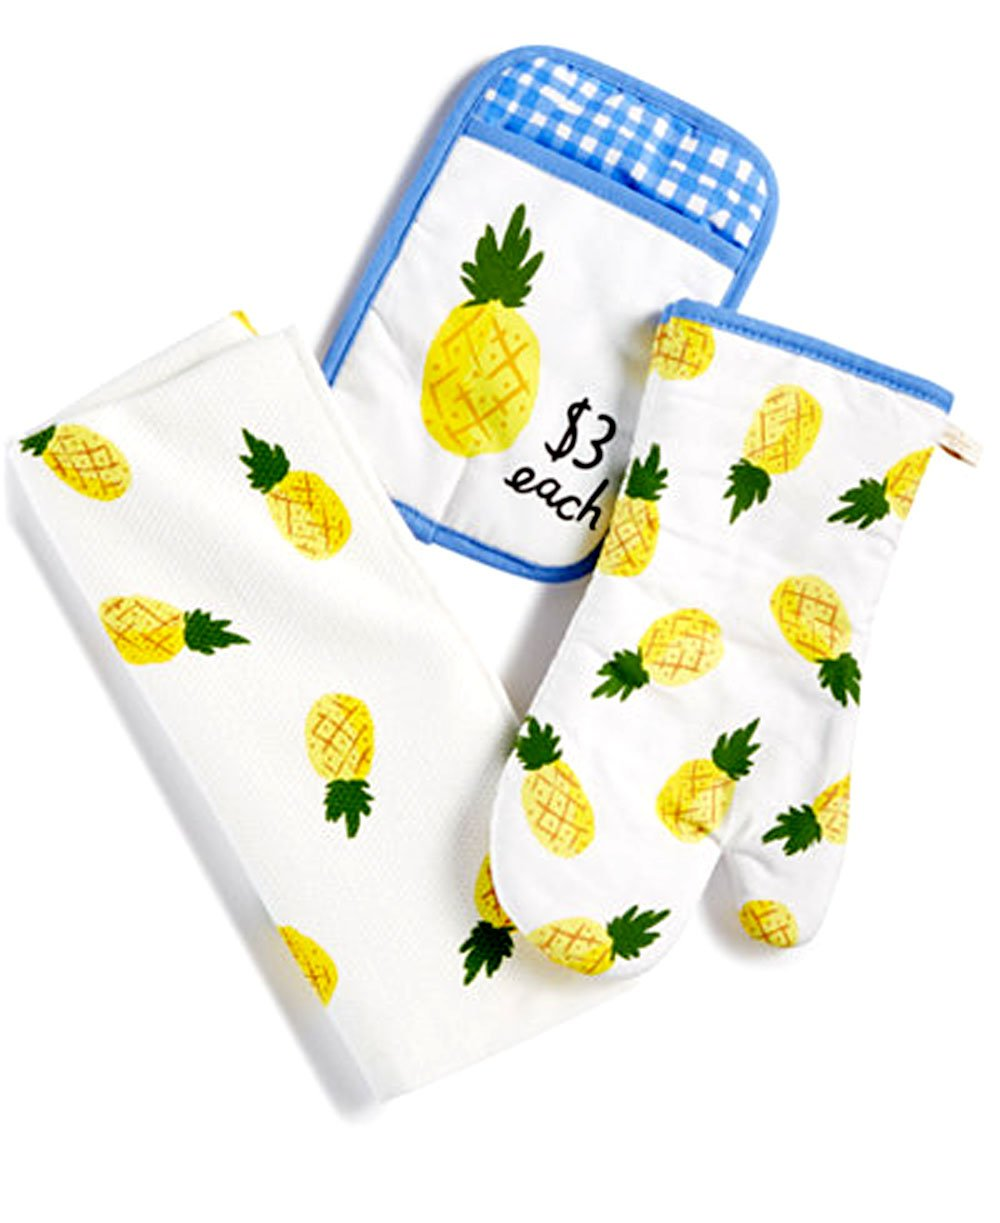 Kate Spade 3 Piece Pineapple Kitchen Towel Set